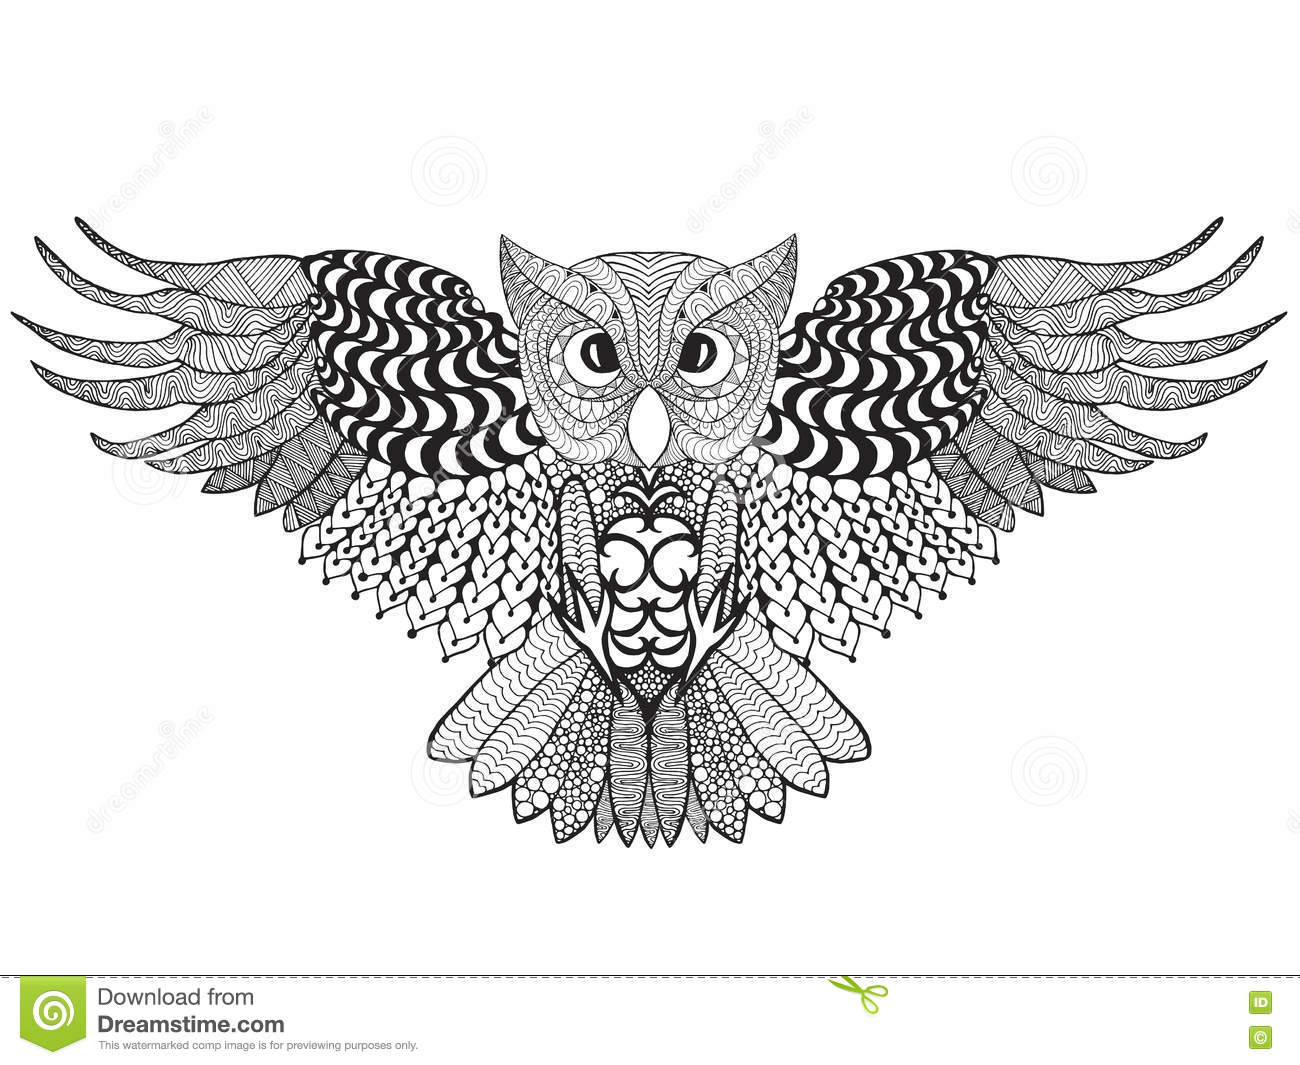 eagle owl adult antistress coloring page black white hand drawn doodle animal ethnic patterned vector african indian totem tribal